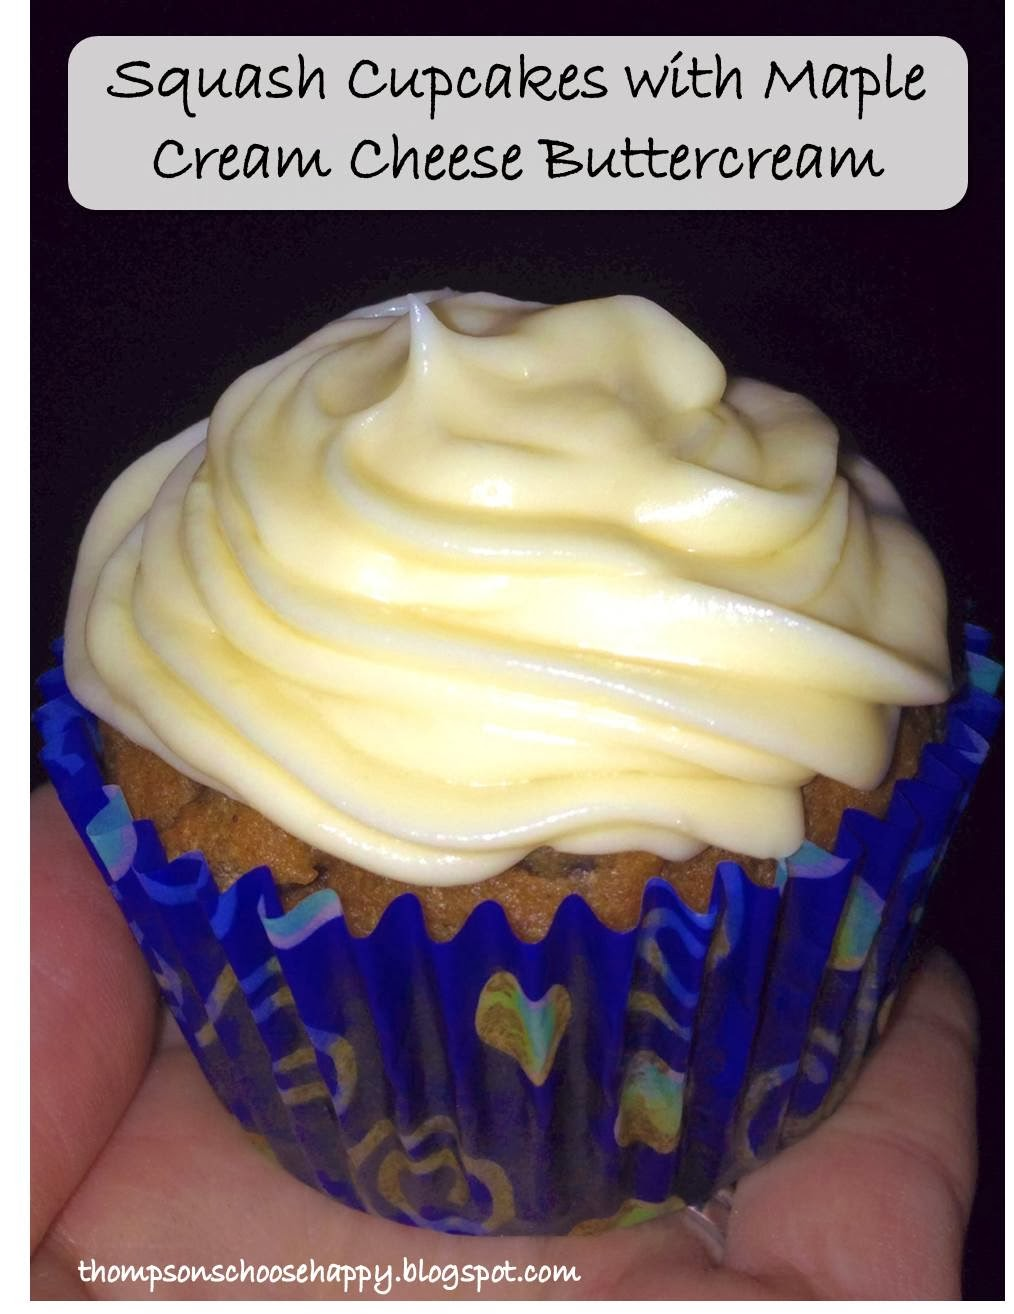 Squash cupcakes with maple cream cheese buttercream icing | Choosing Happy Blog